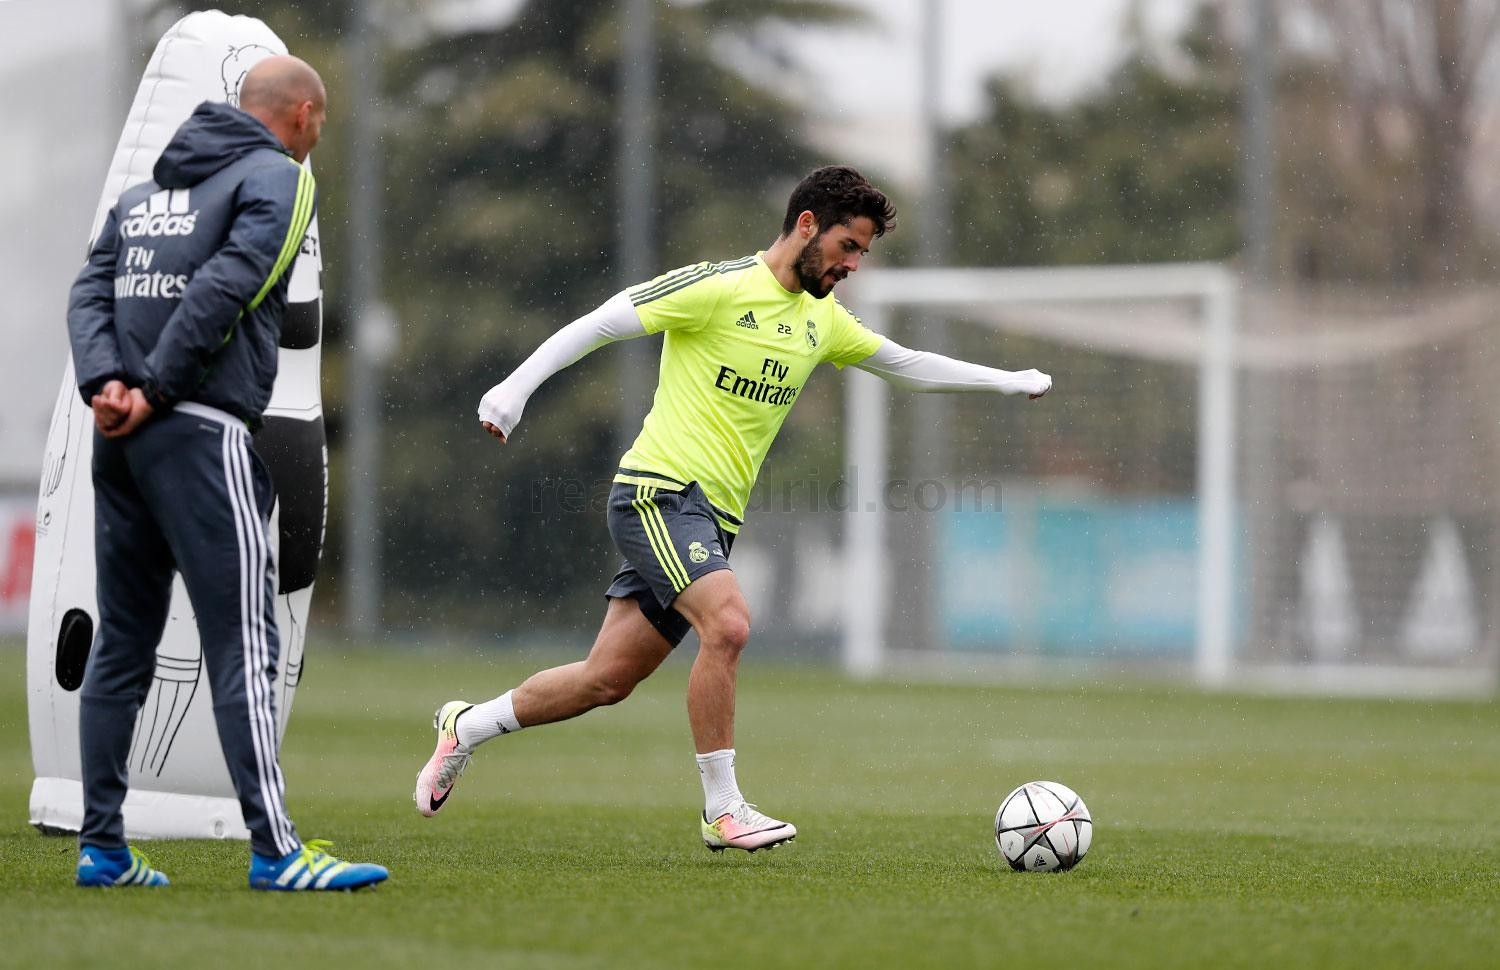 Real Madrid - Entrenamiento del Real Madrid - 03-04-2016